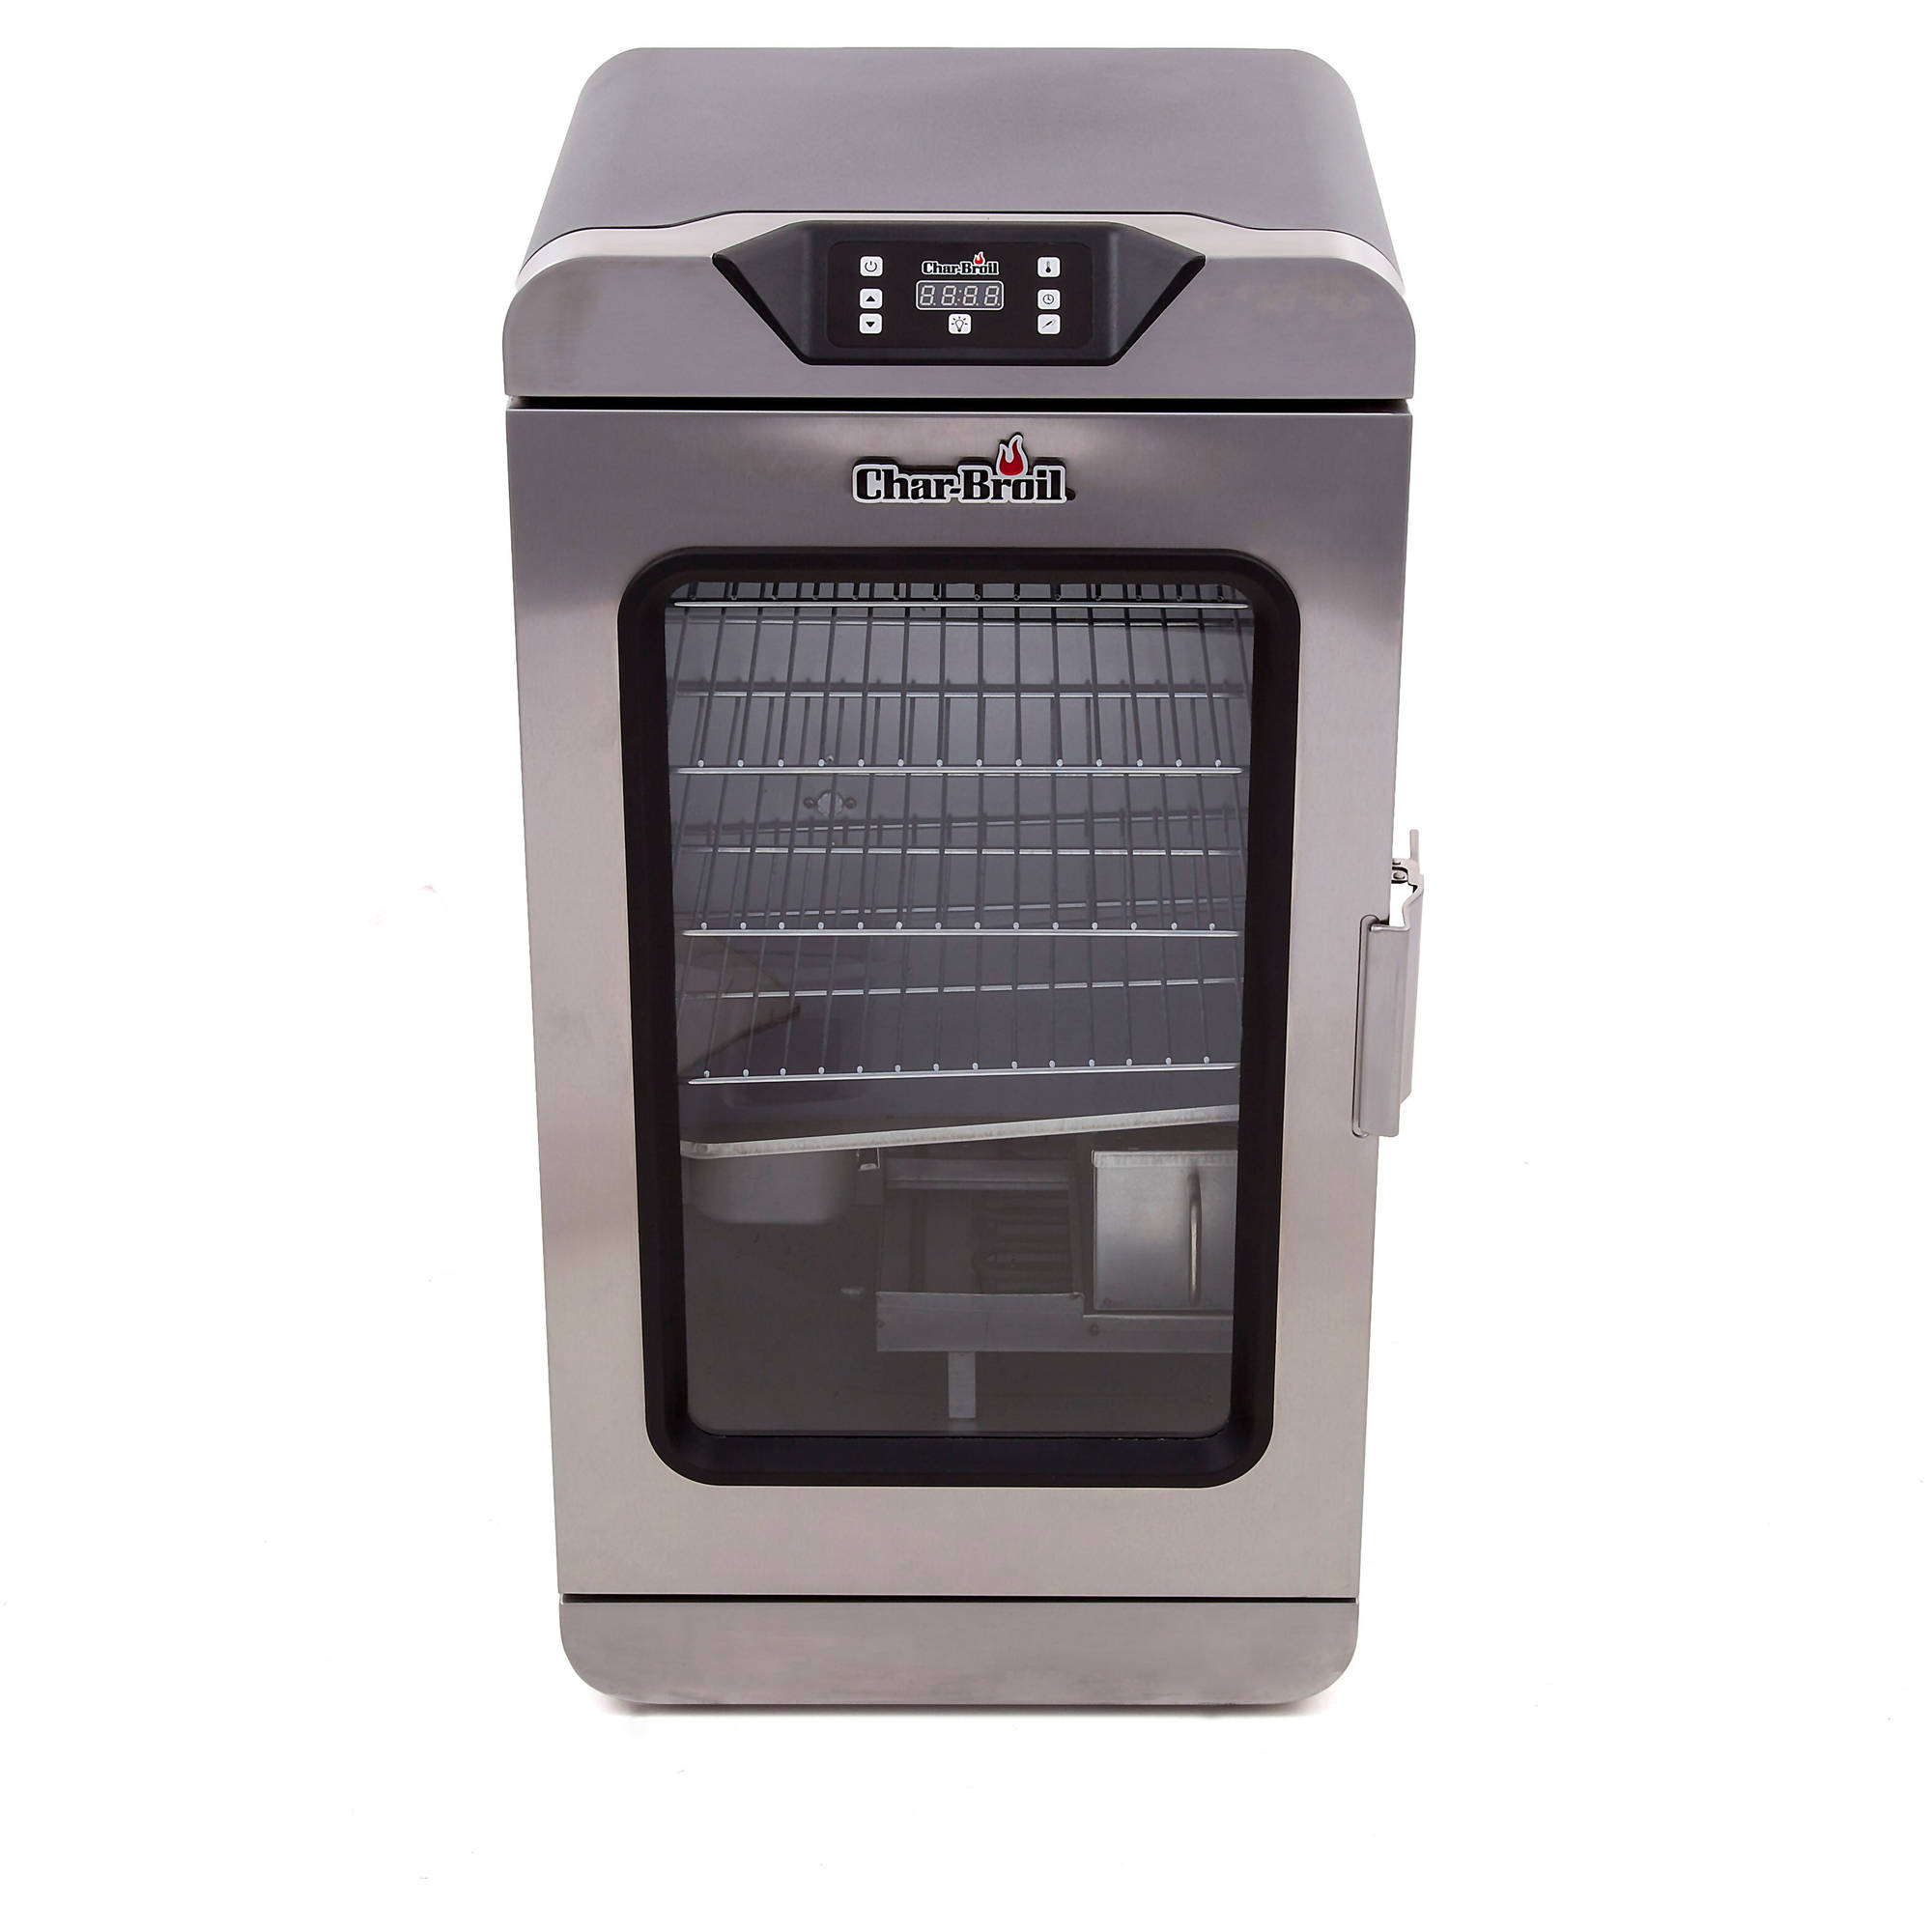 Char-Broil 725 Deluxe Digital Electric Smoker by Char-Broil